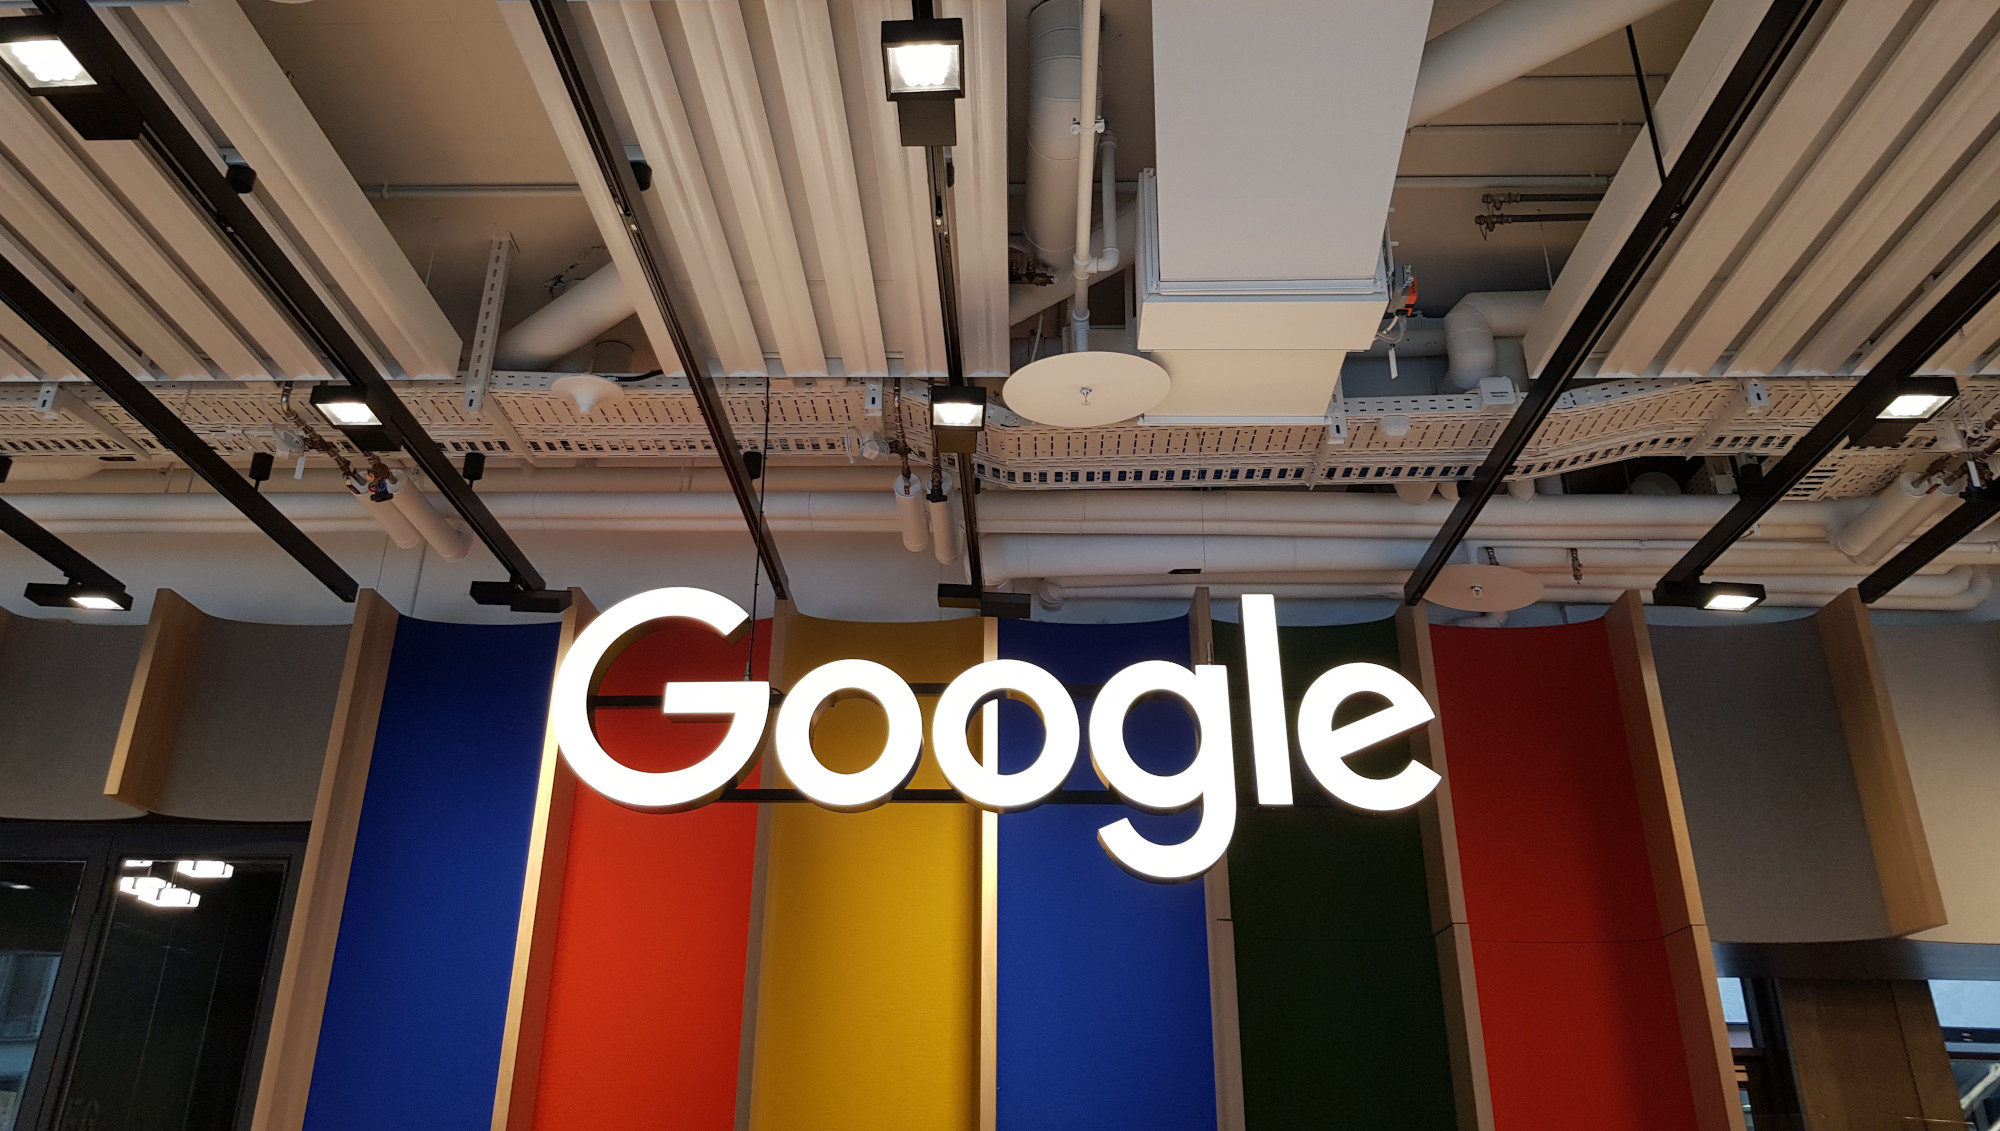 Google Zurich Reception